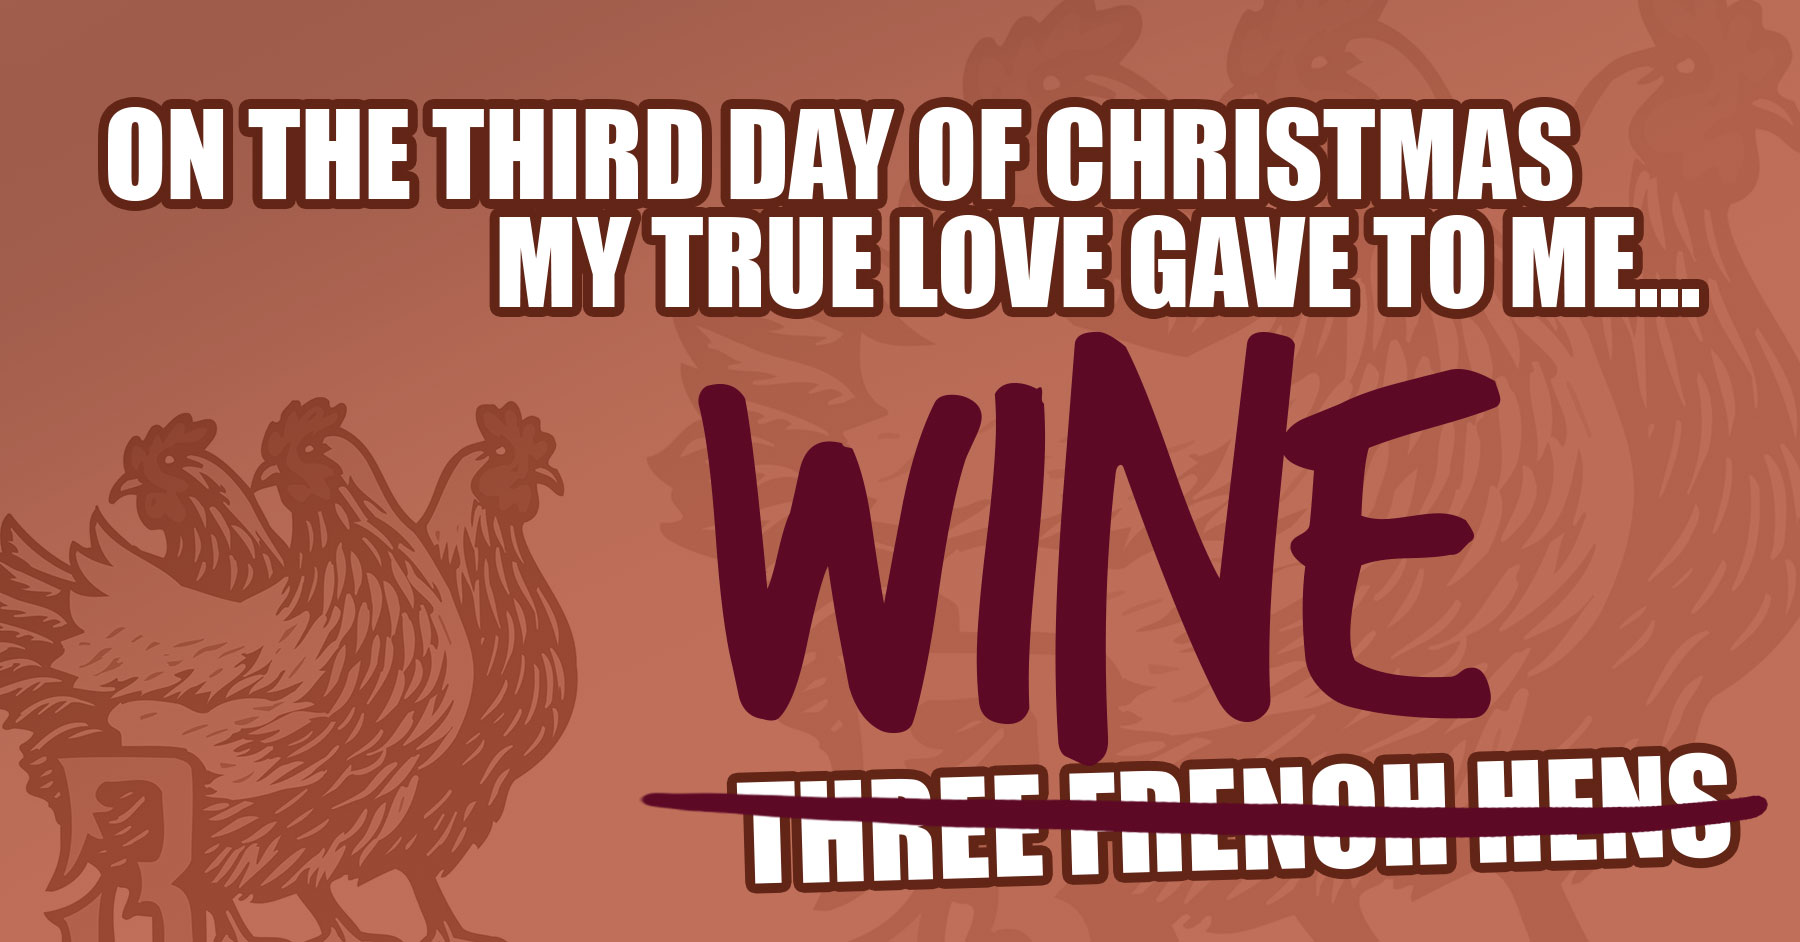 12 Days of Christmas. 3 French hens. wine.